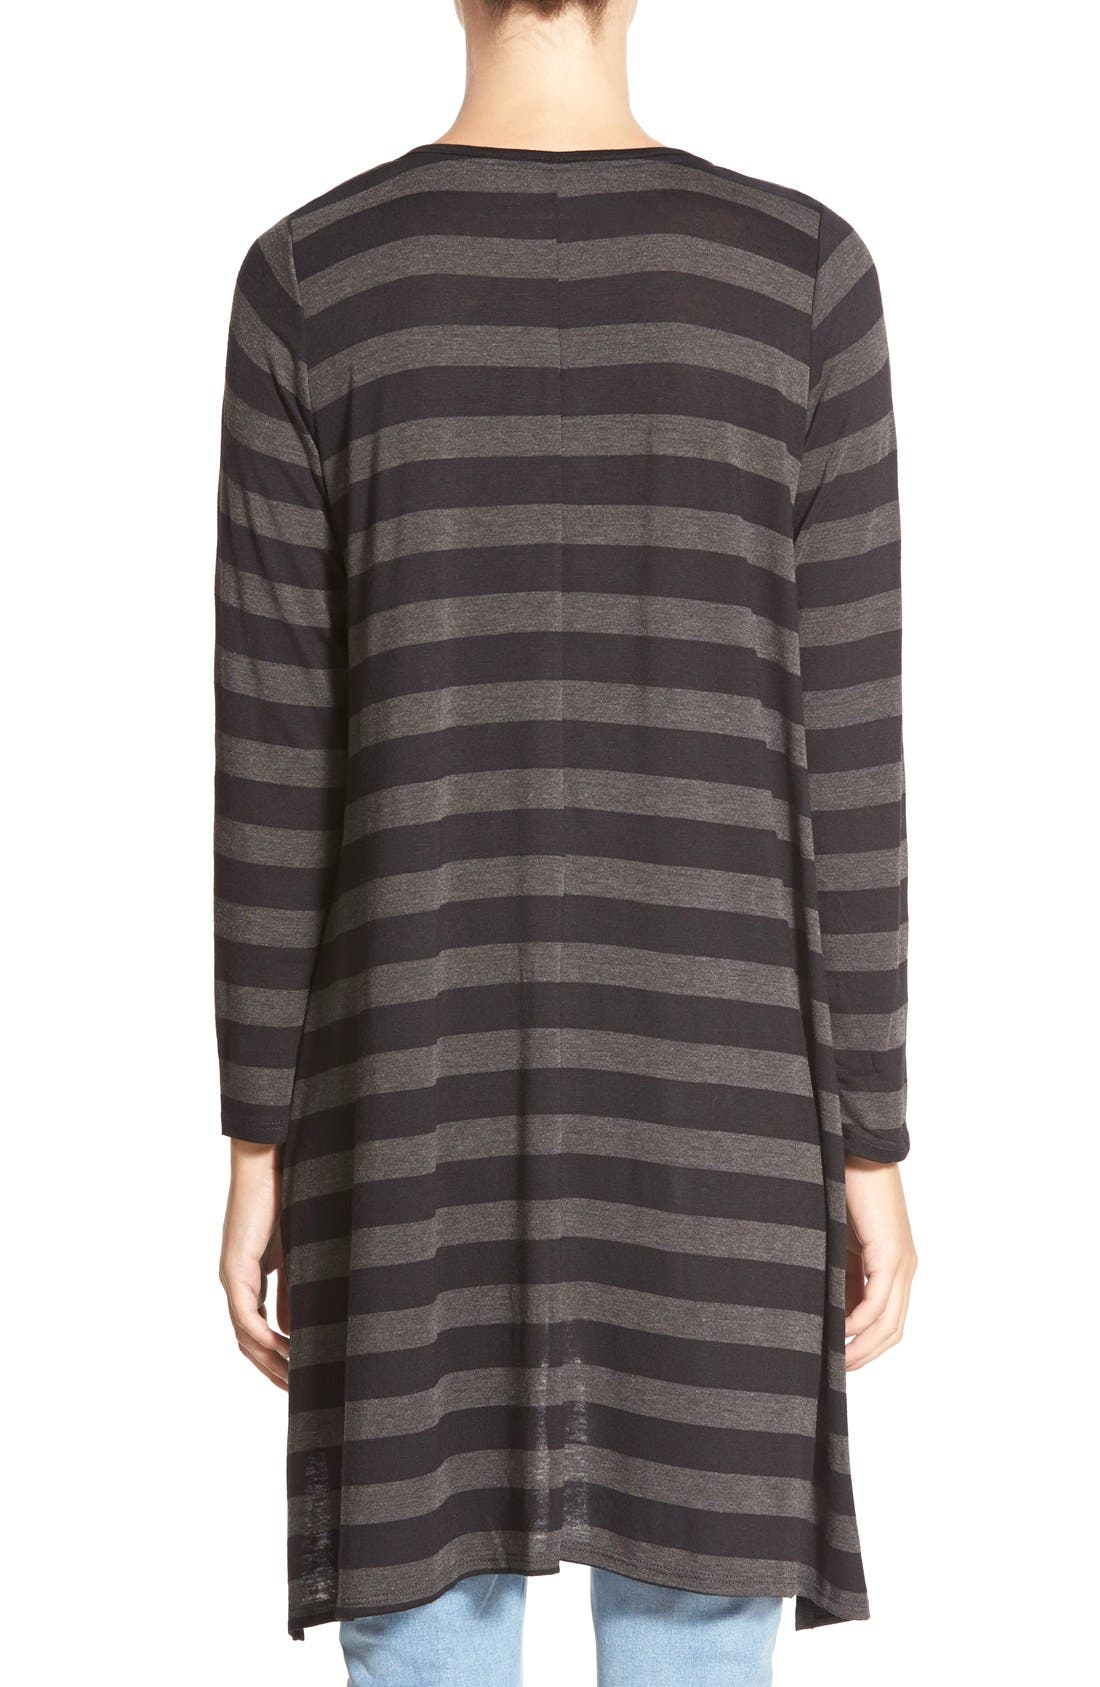 BP., Stripe High/Low Tunic Tee, Alternate thumbnail 5, color, 001